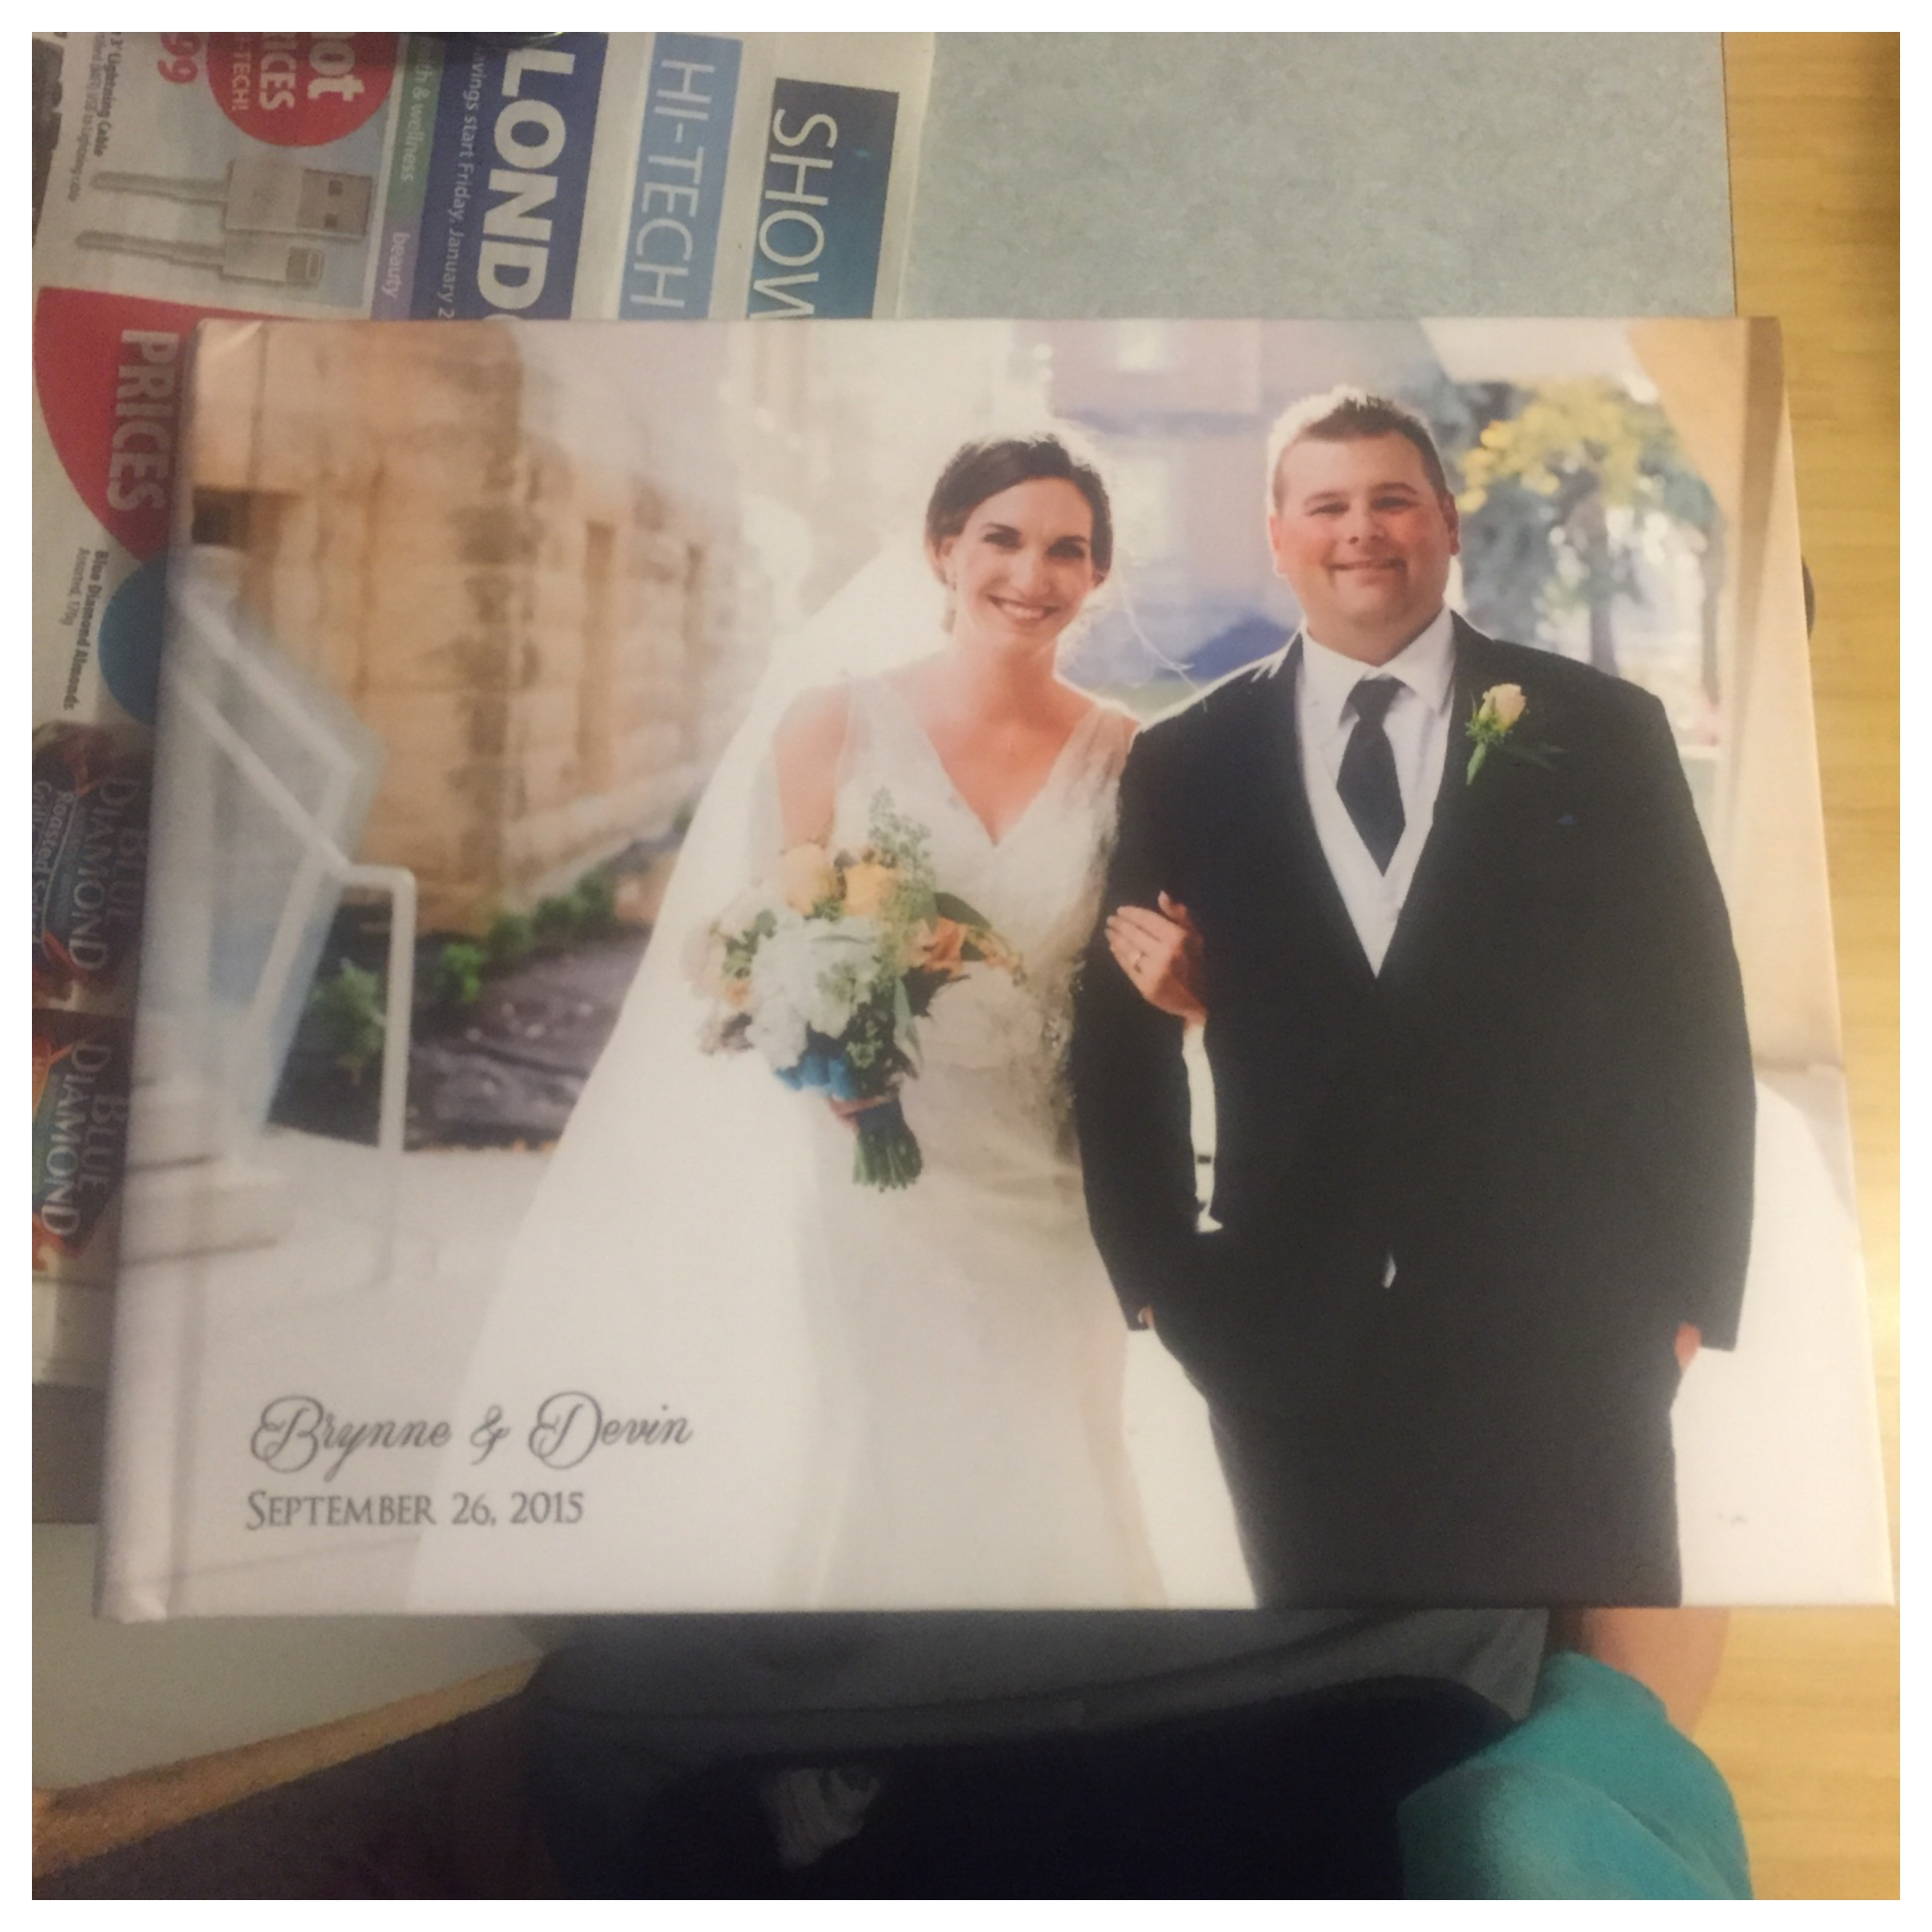 Absorbing Parents Heavier Paper For Wedding Album We Went Regularmatte Can I See Your Shutterfly Wedding Wedding Photo Books Shutterfly Wedding Photo Book wedding photo Wedding Photo Book